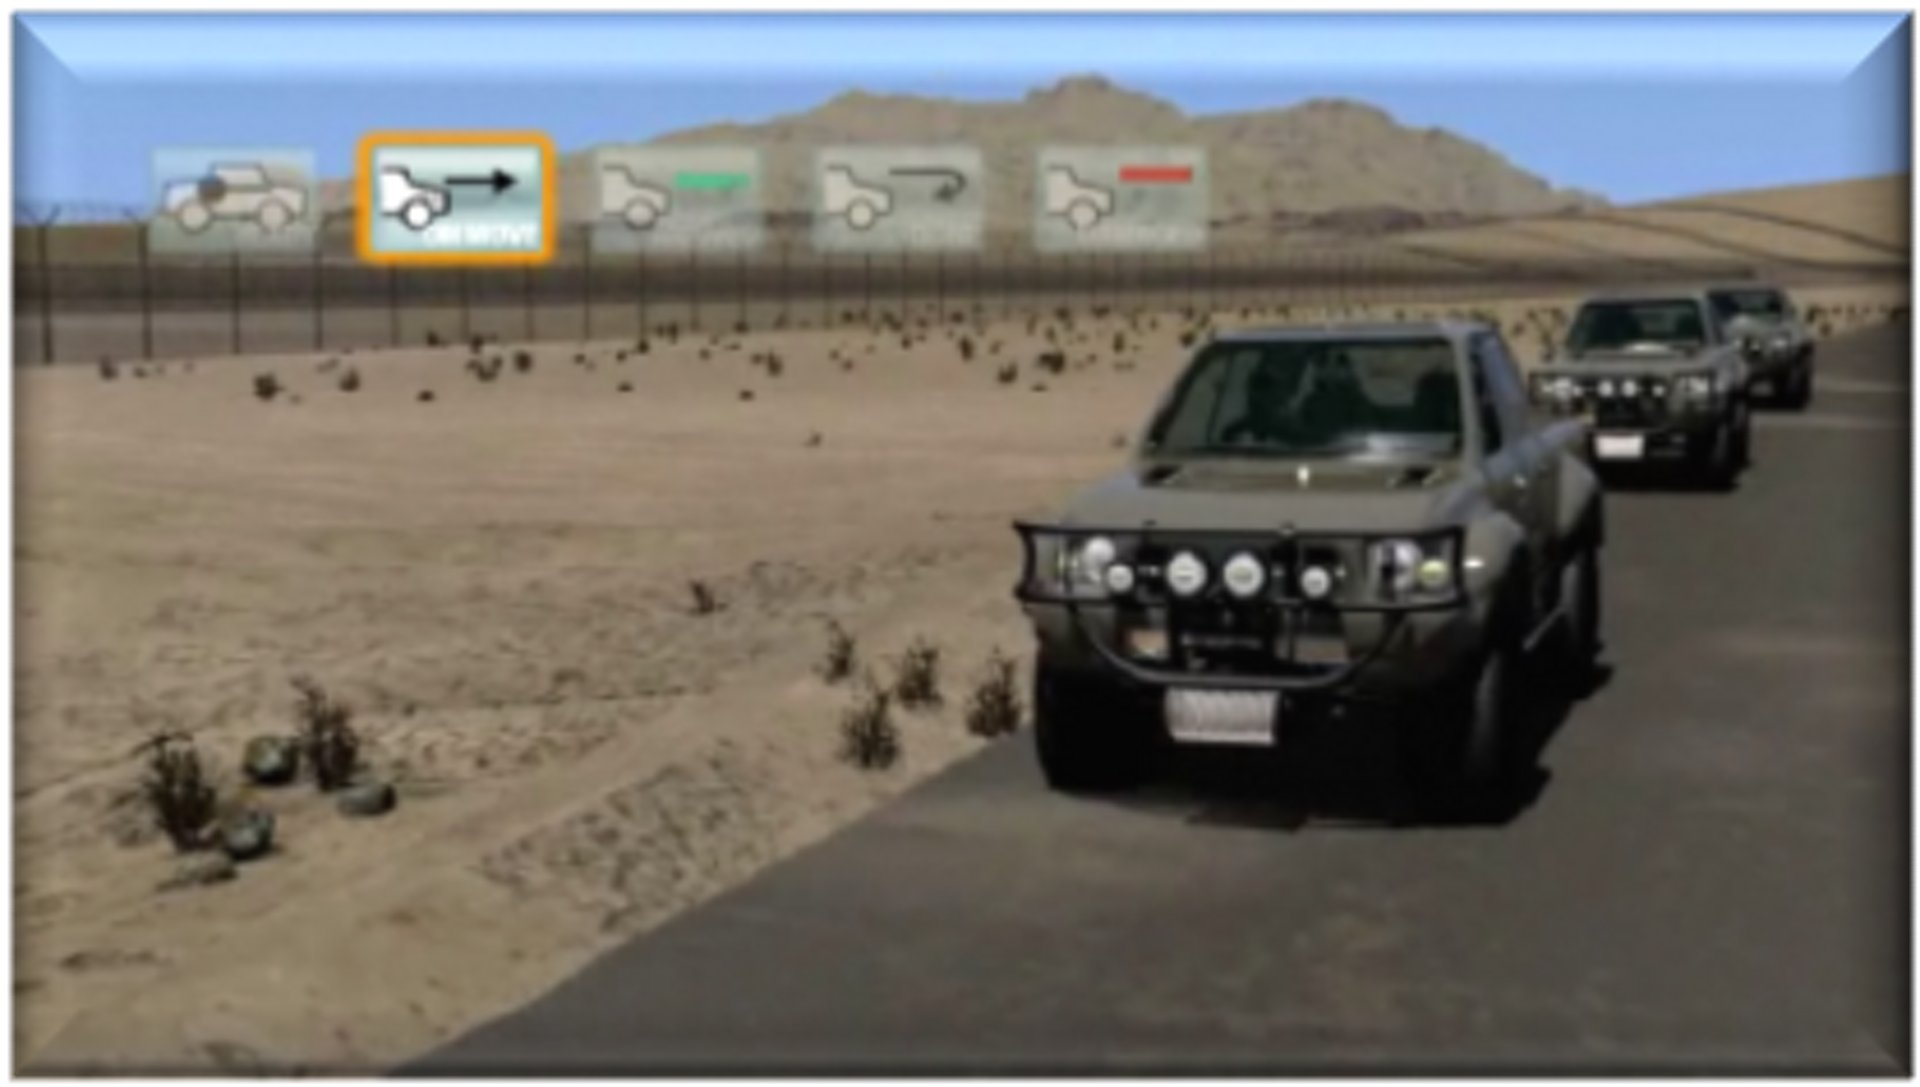 Border patrol personnel scan vehicles for threats using Smart Fences capabilities.